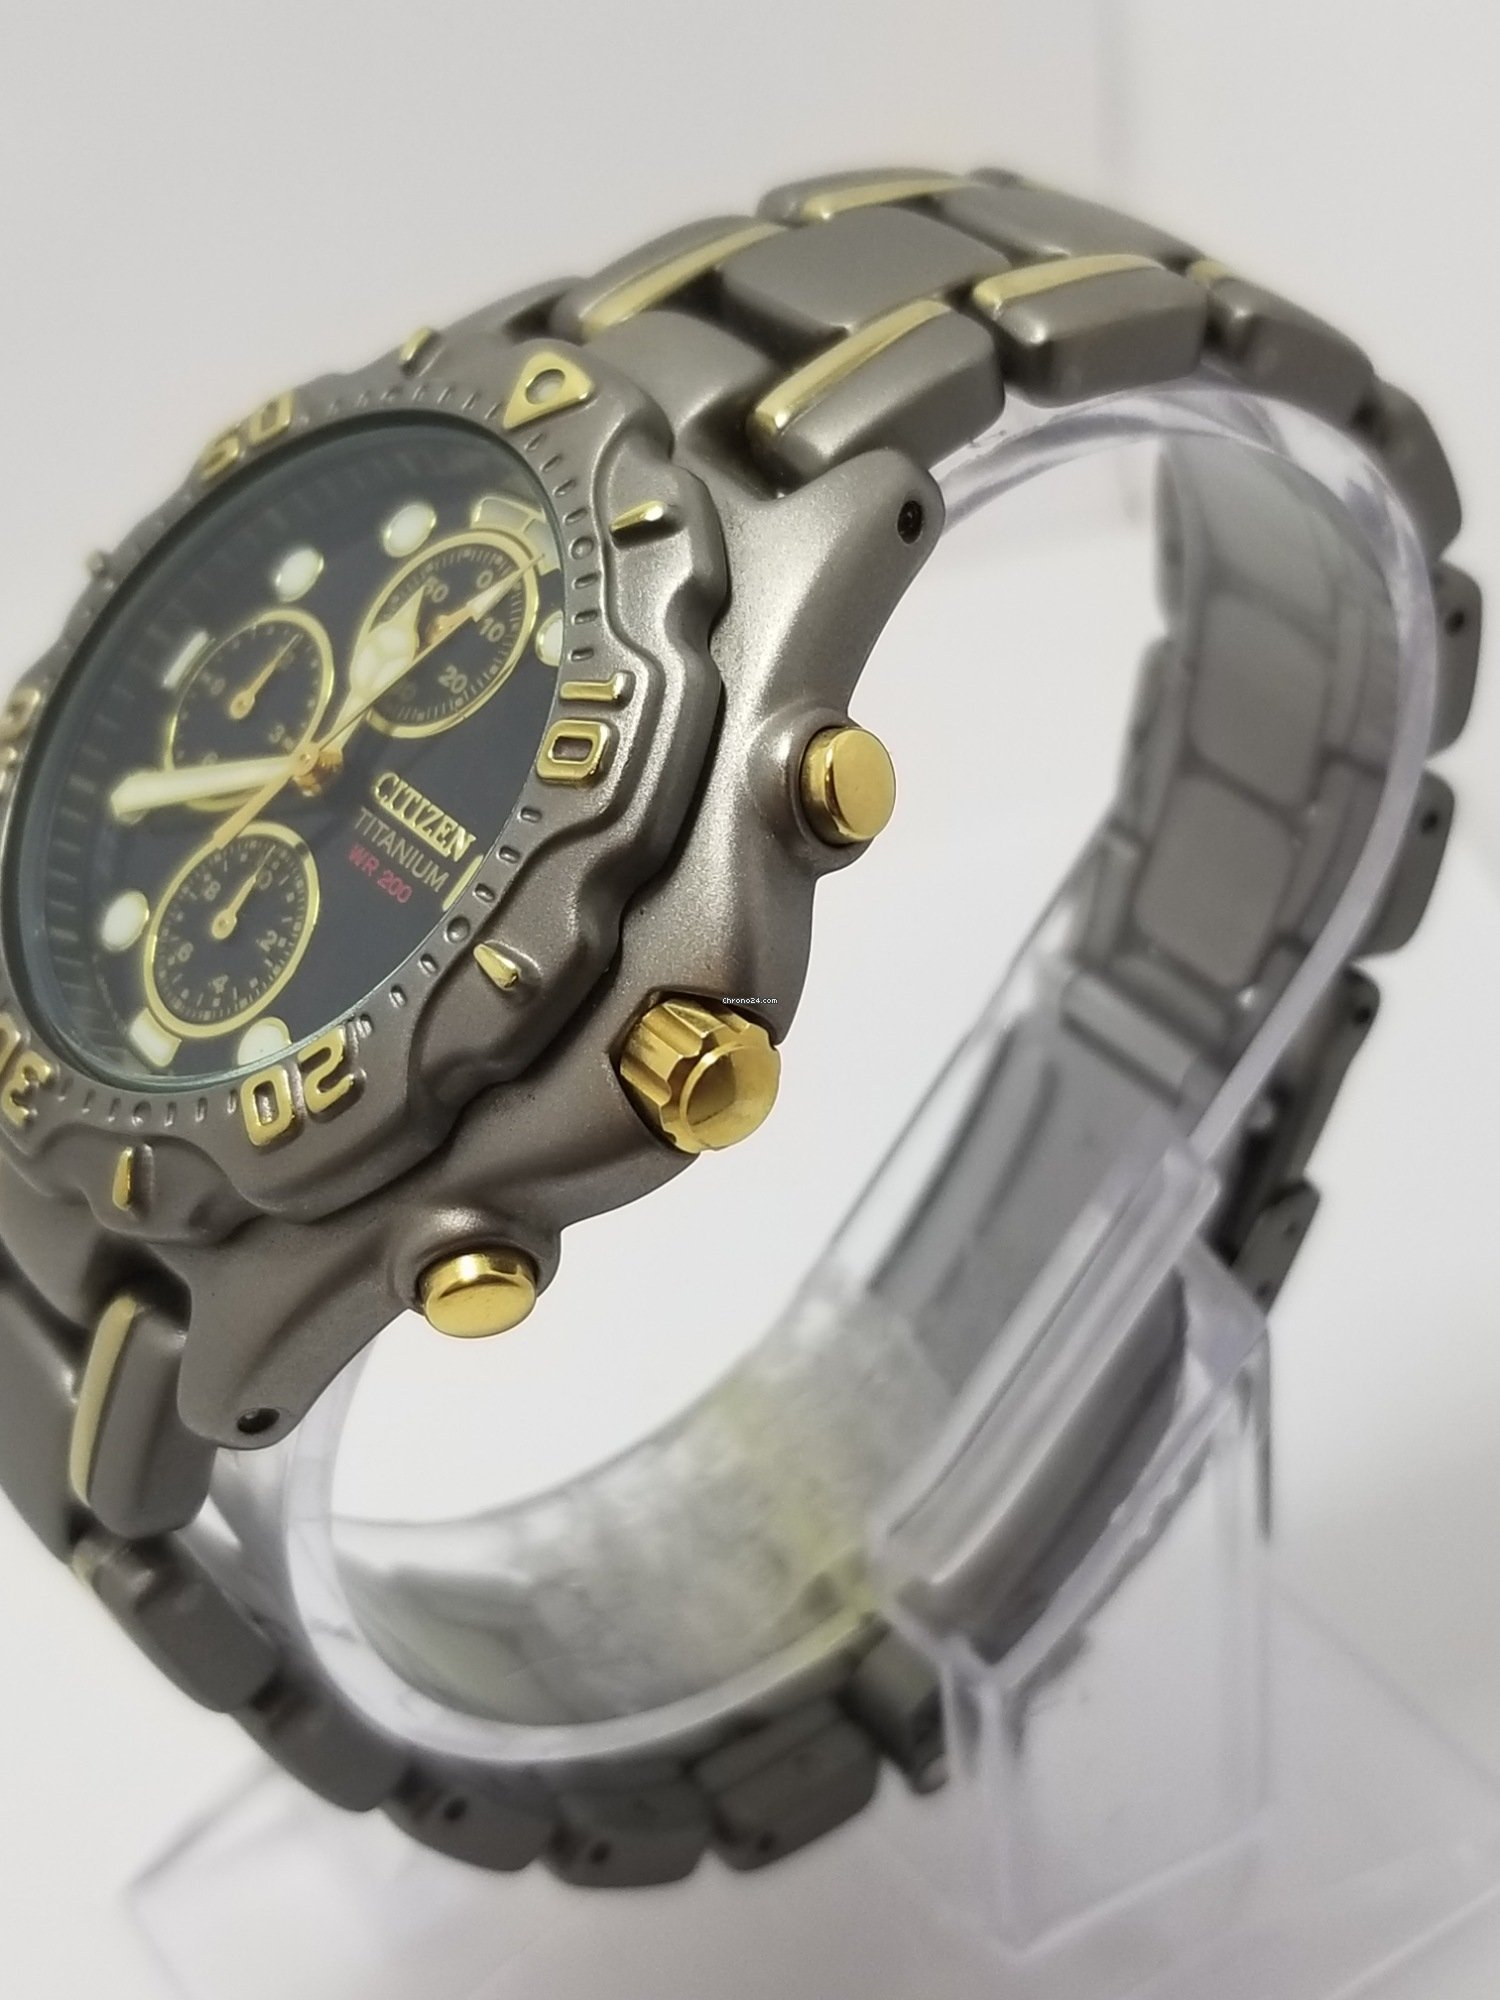 62108382b Citizen Two-tone Titanium #0560-h02829 Black Dial Chronograph... for  Listing no longer available for sale from a Private Seller on Chrono24